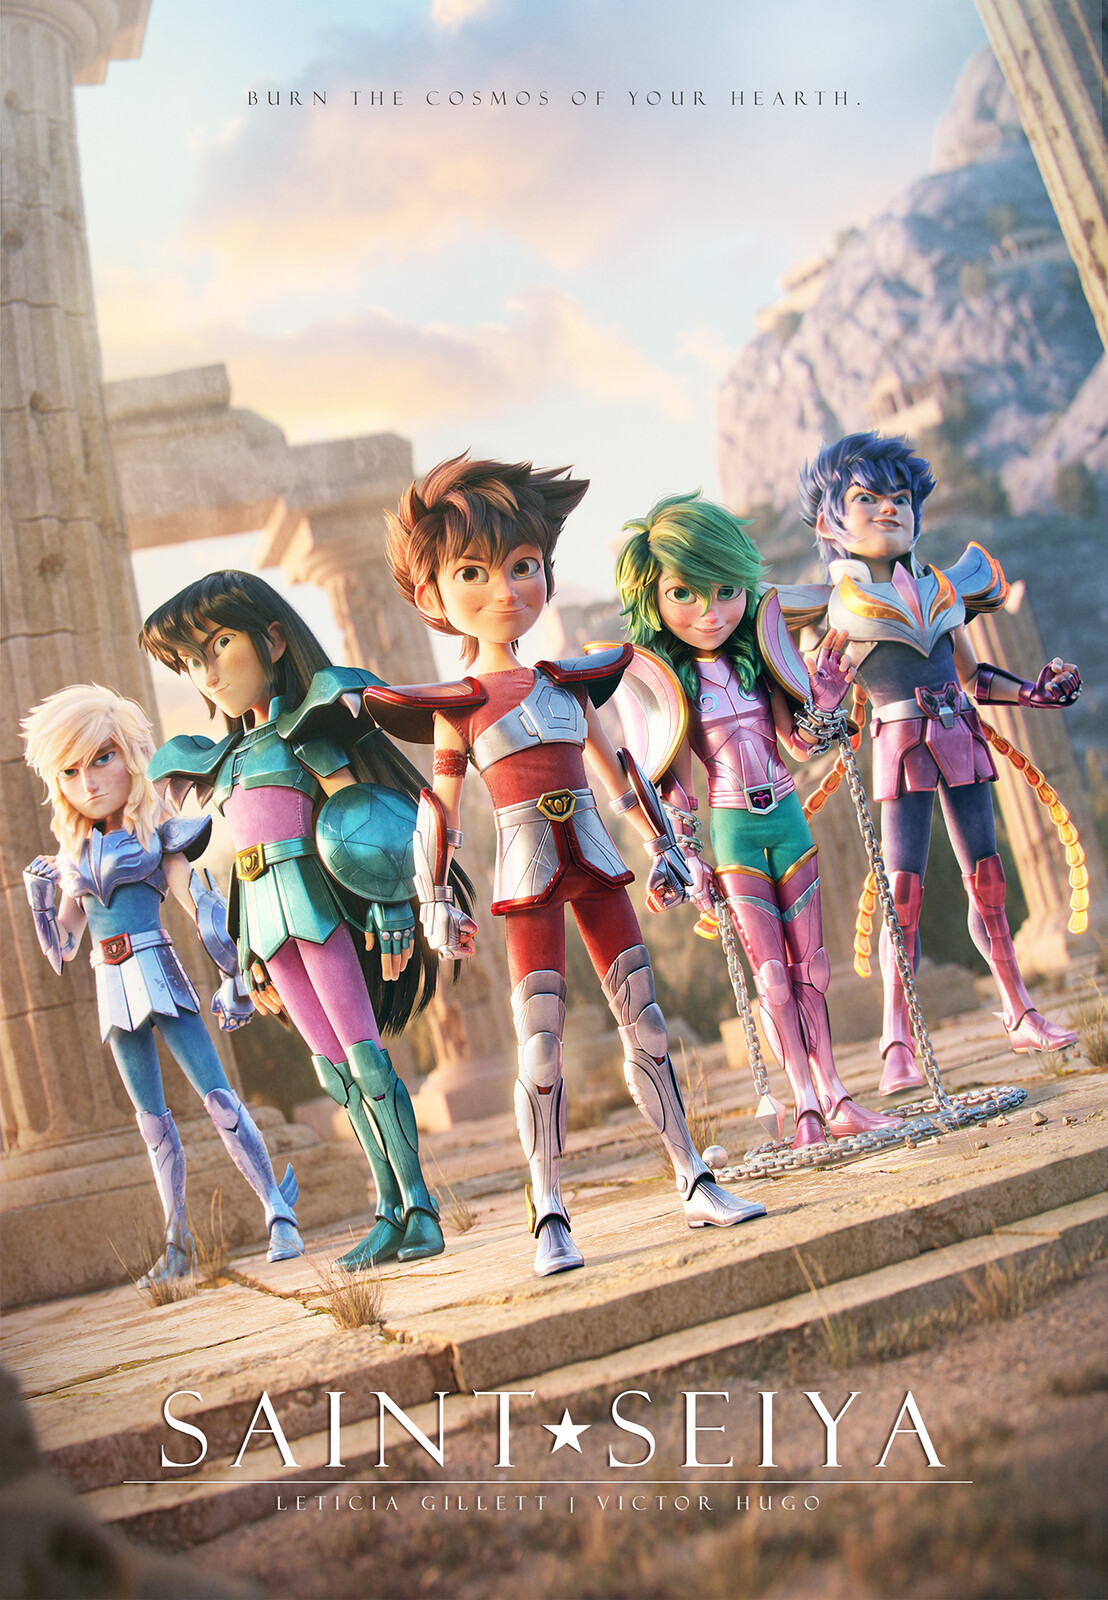 Saint Seiya fan poster